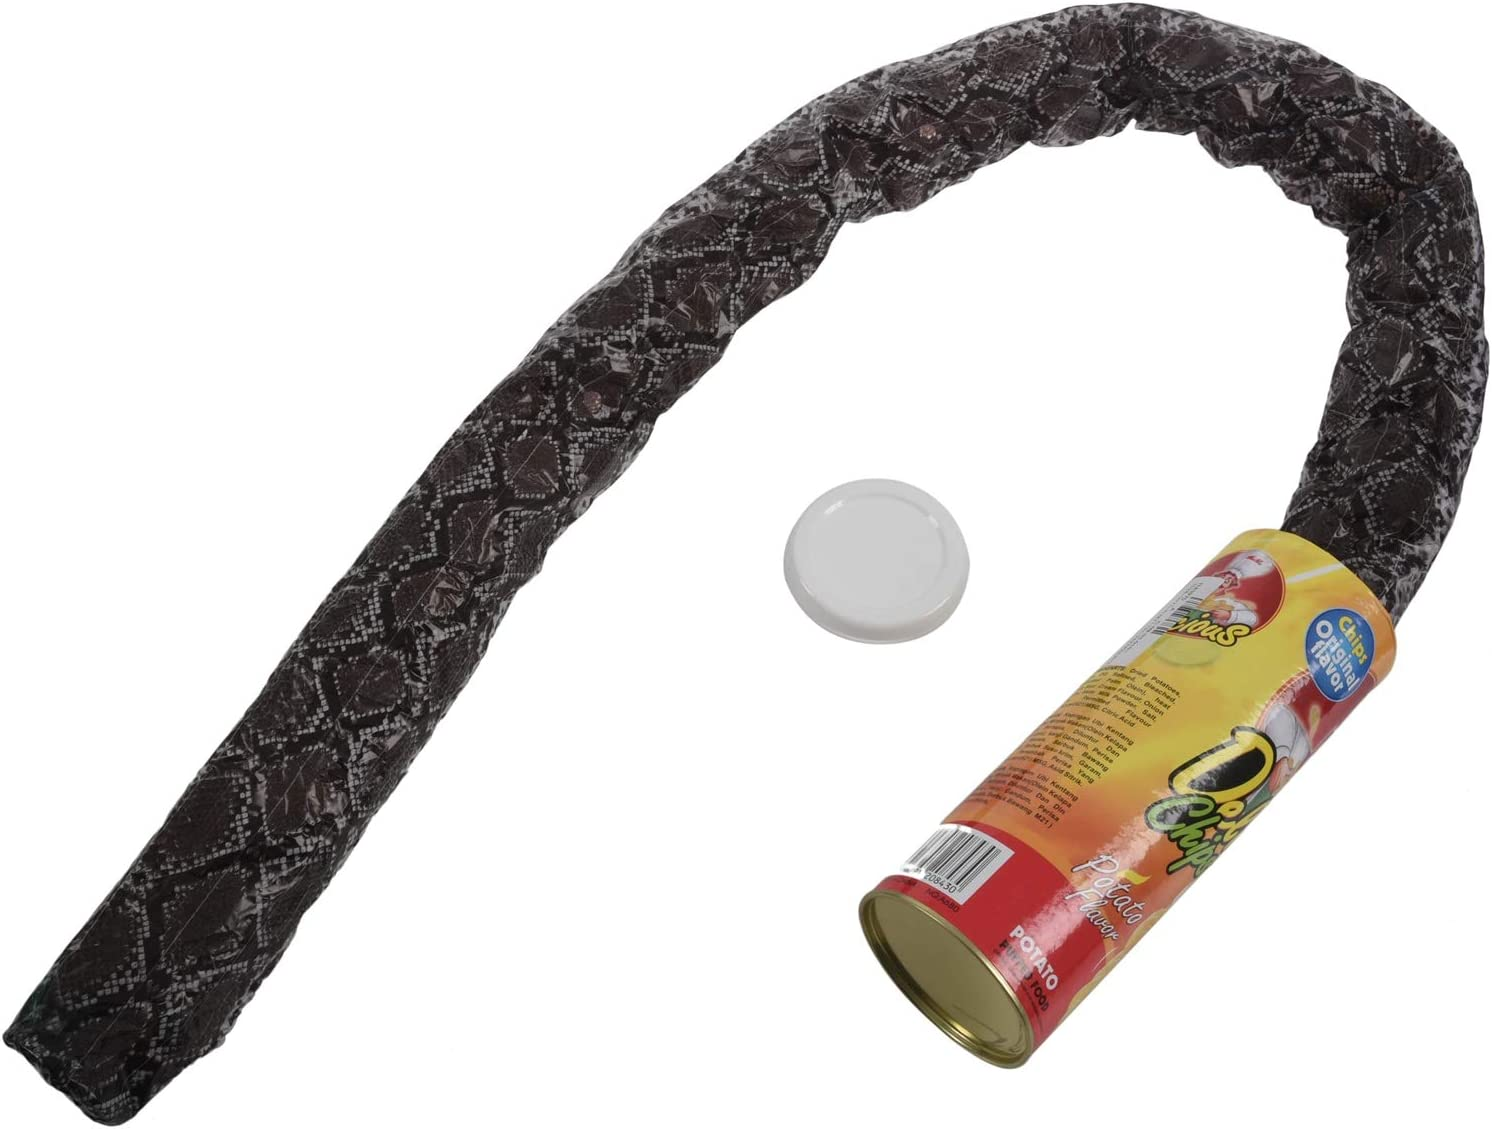 Potato Chip style YRO The Potato Chip Snake Can Jump Spring Snake Toy Gift April Fool Day Halloween Party Decoration Jokes In A Can Gag Gift Prank Large Size